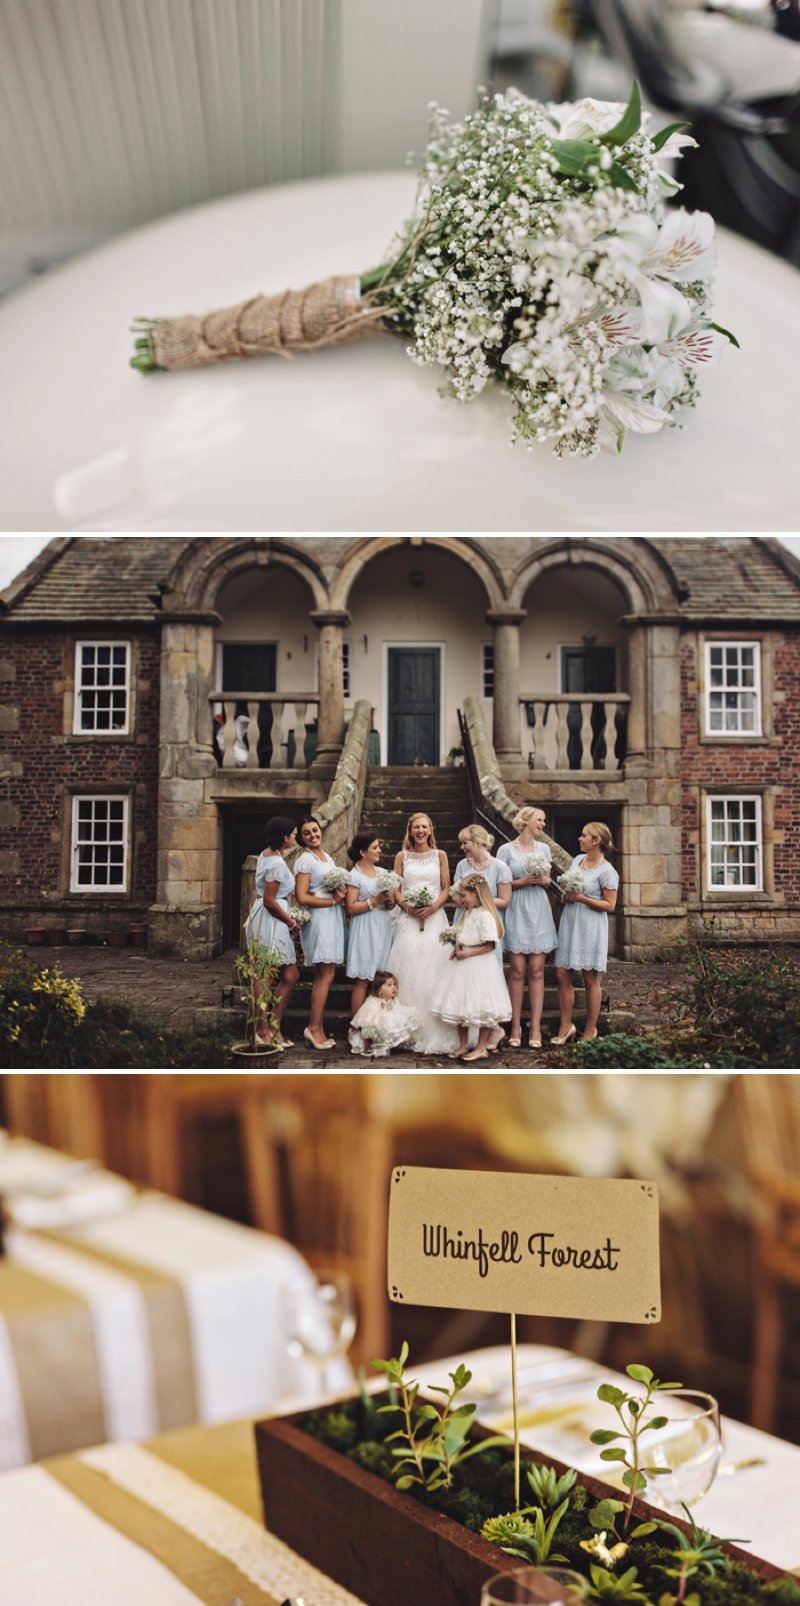 A Rustic Village Hall Wedding With A Blue And Gold Colour Scheme And Stag Graphic Across The Stationery With Bride In Bespoke Dress By Chic Dress And Groom In Brown Suit With Bridesmaids In Baby Blue Dresses With Broderie Anglaise Detail 1